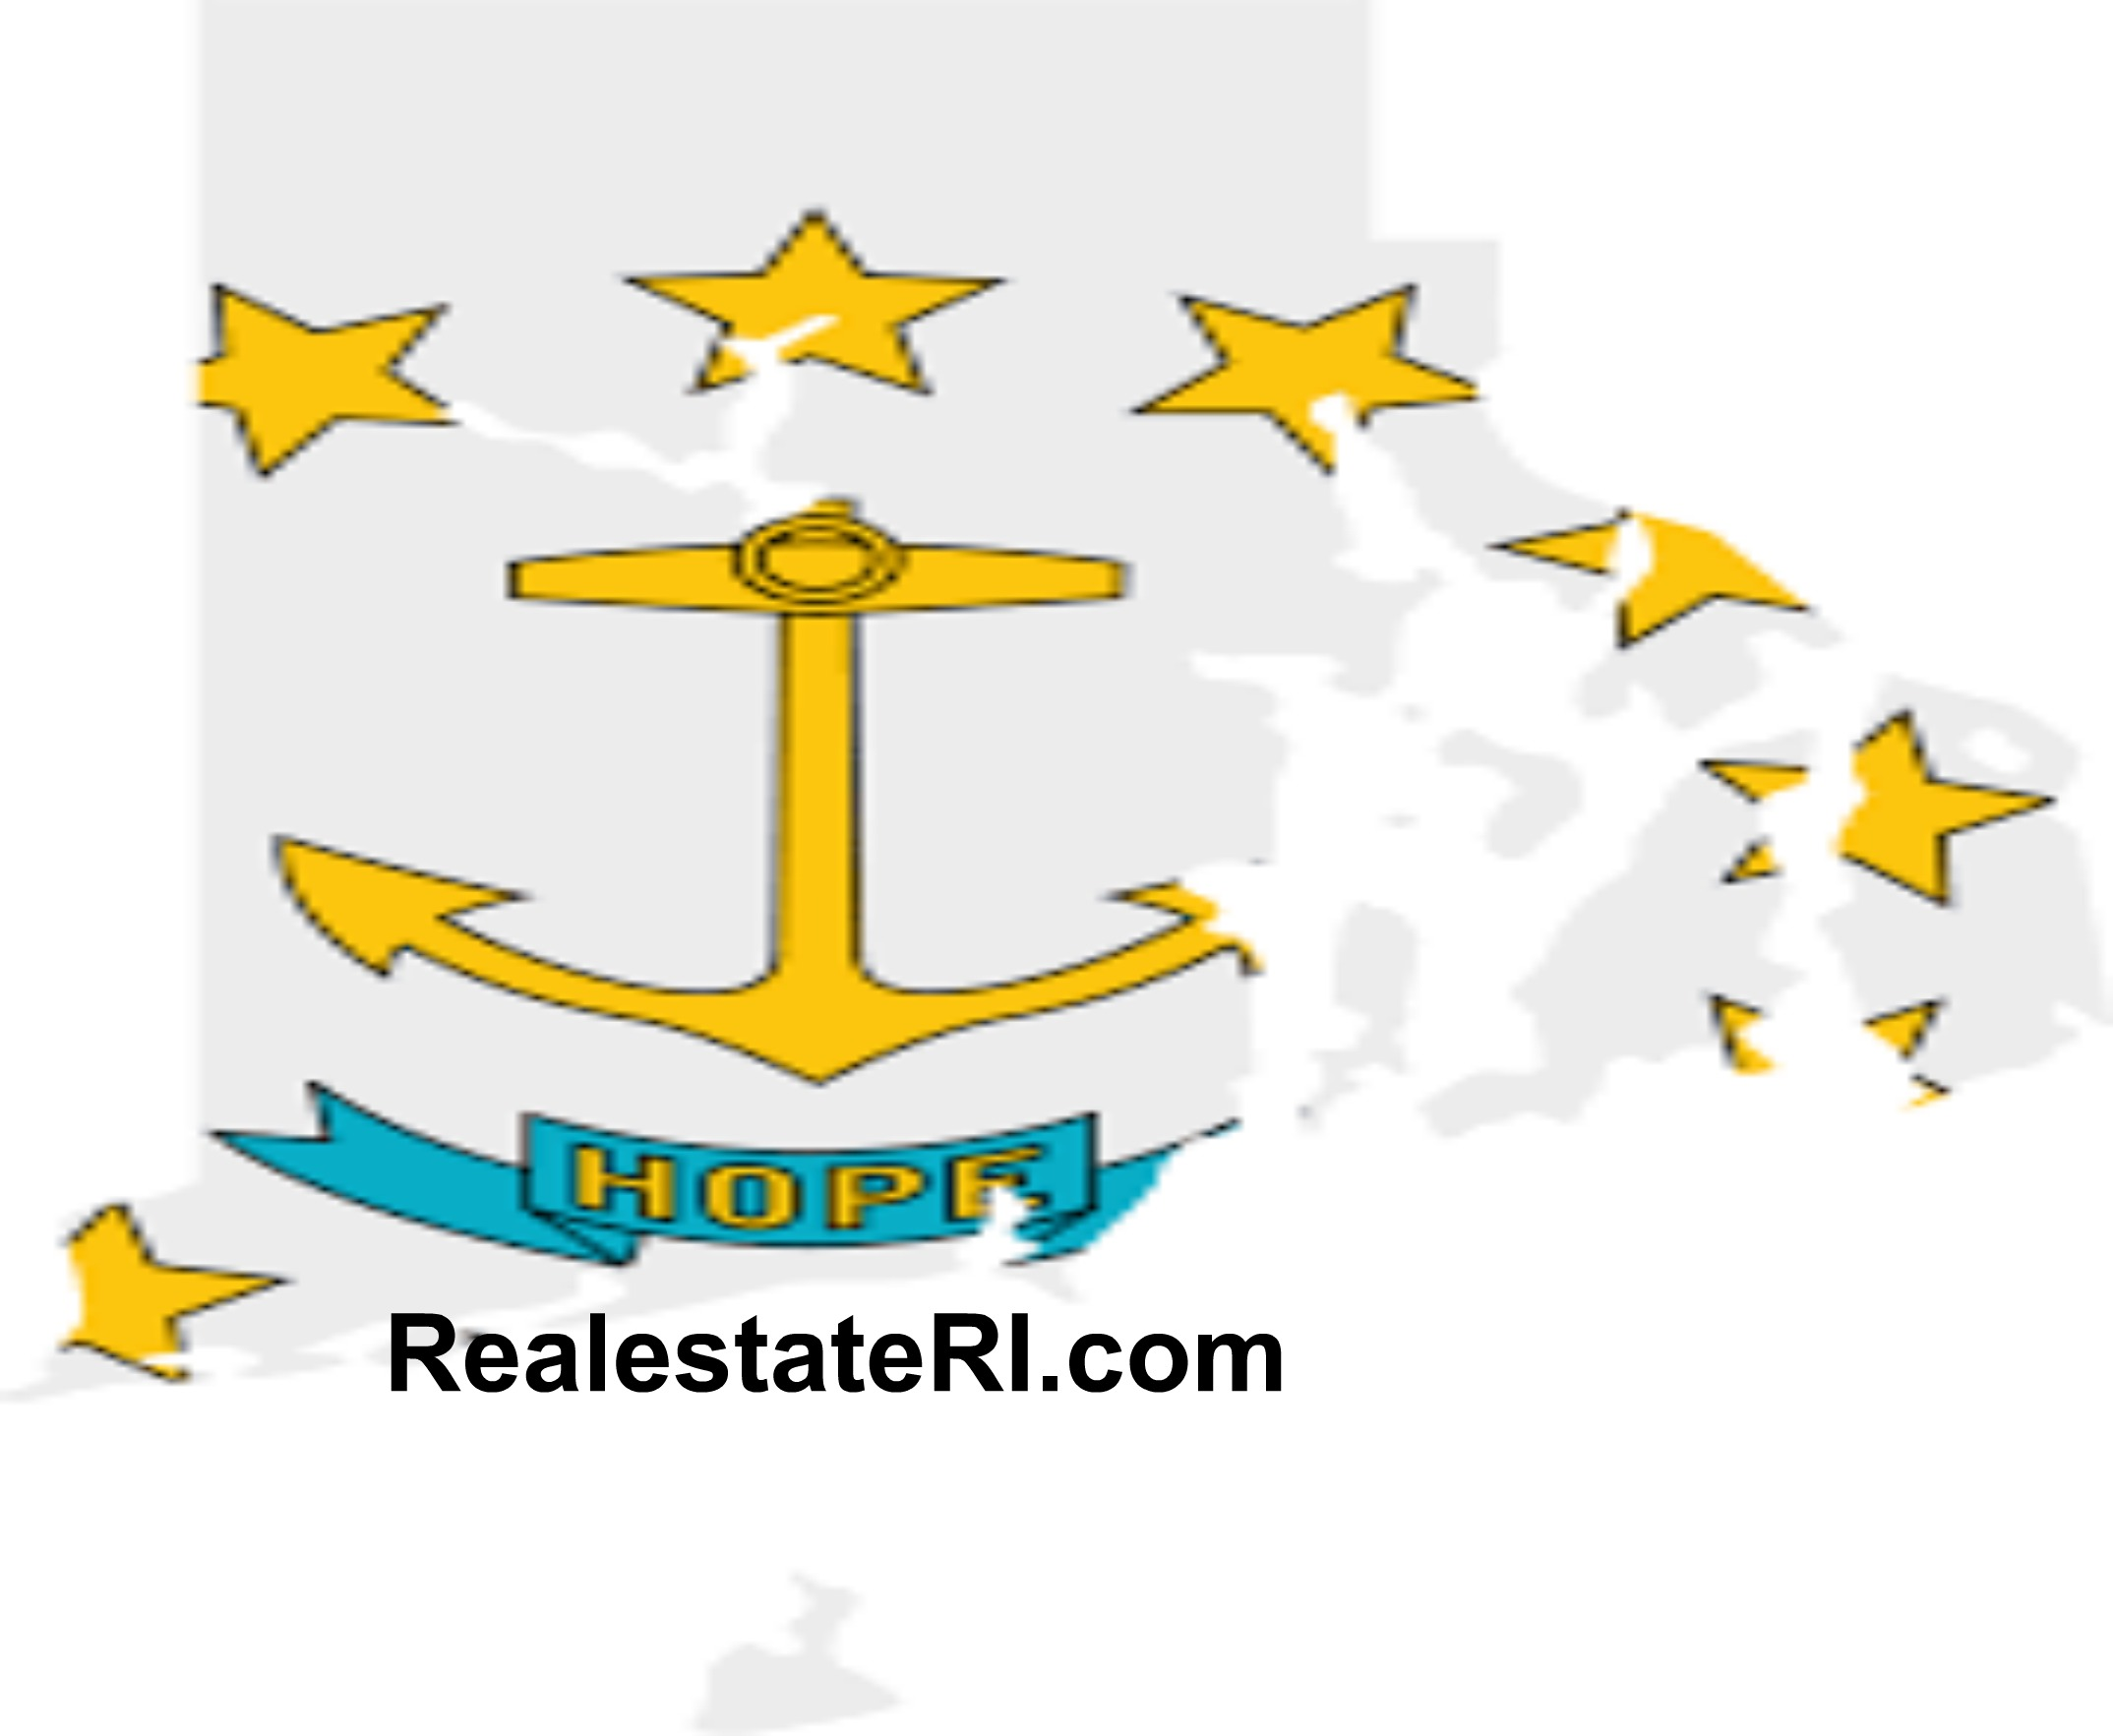 Homes for sale in Rhode Island